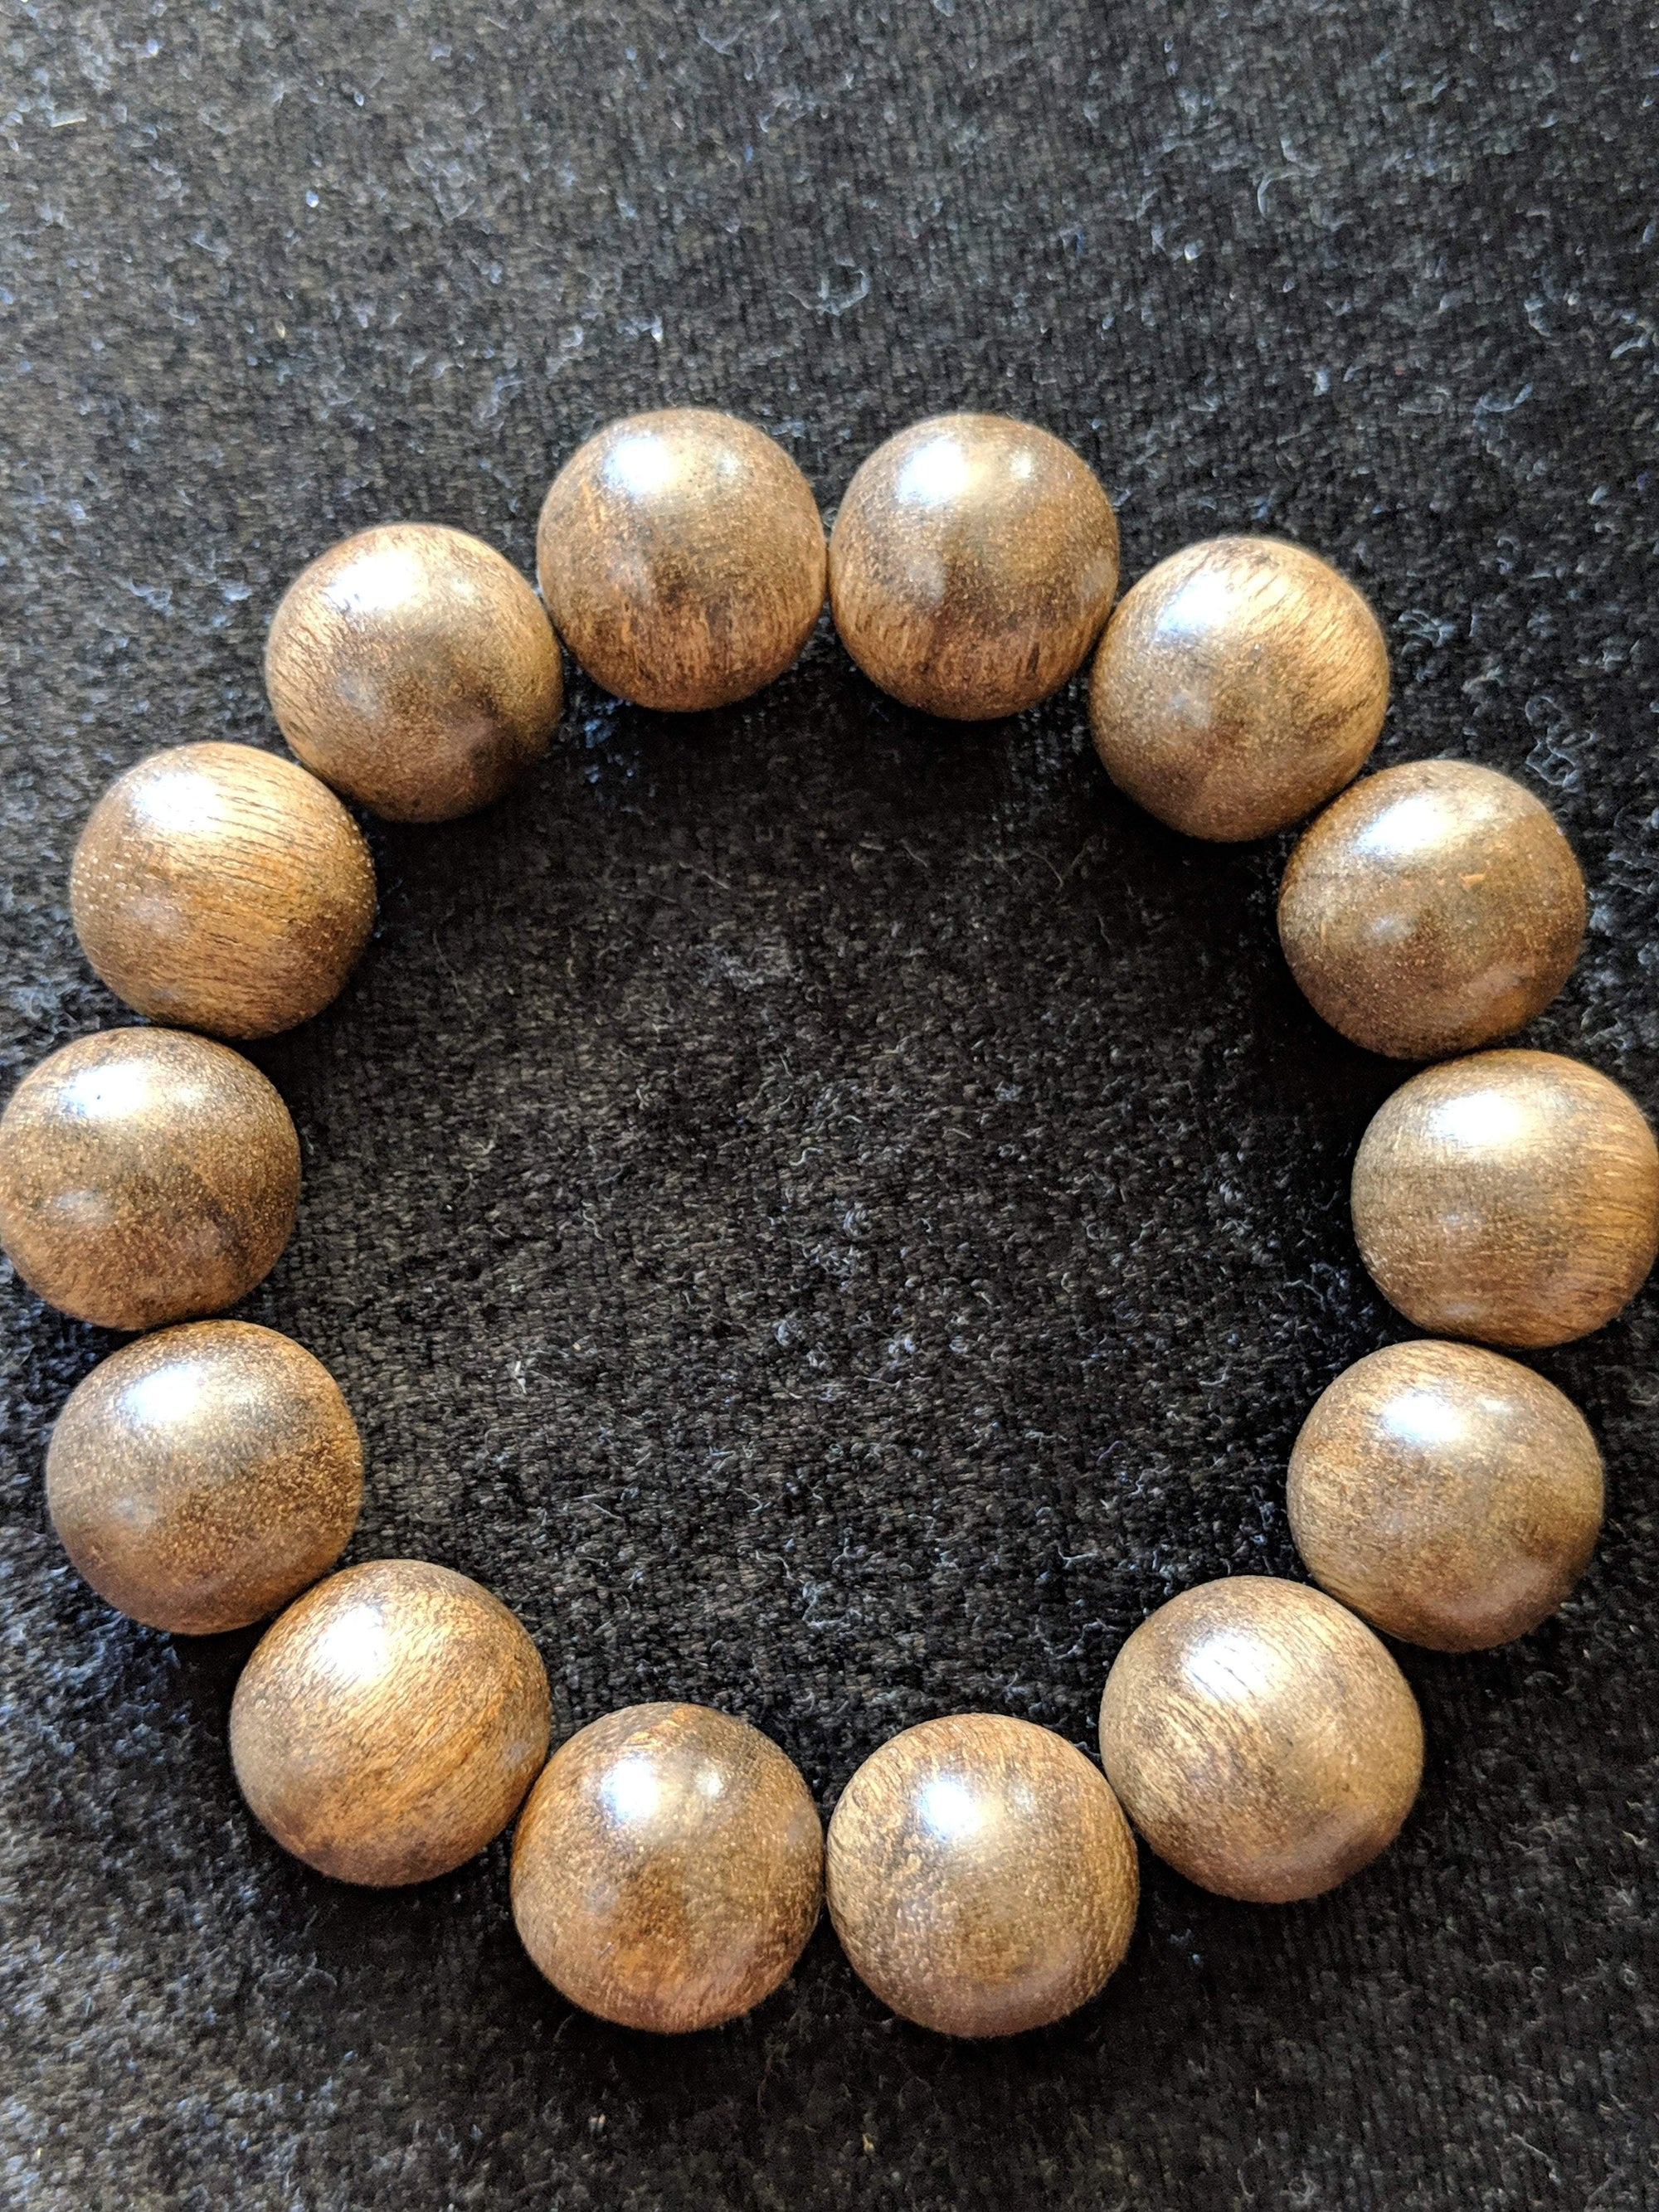 Beads *New* The Little Borneo Wild Agarwood 19g,14 beads 16mm